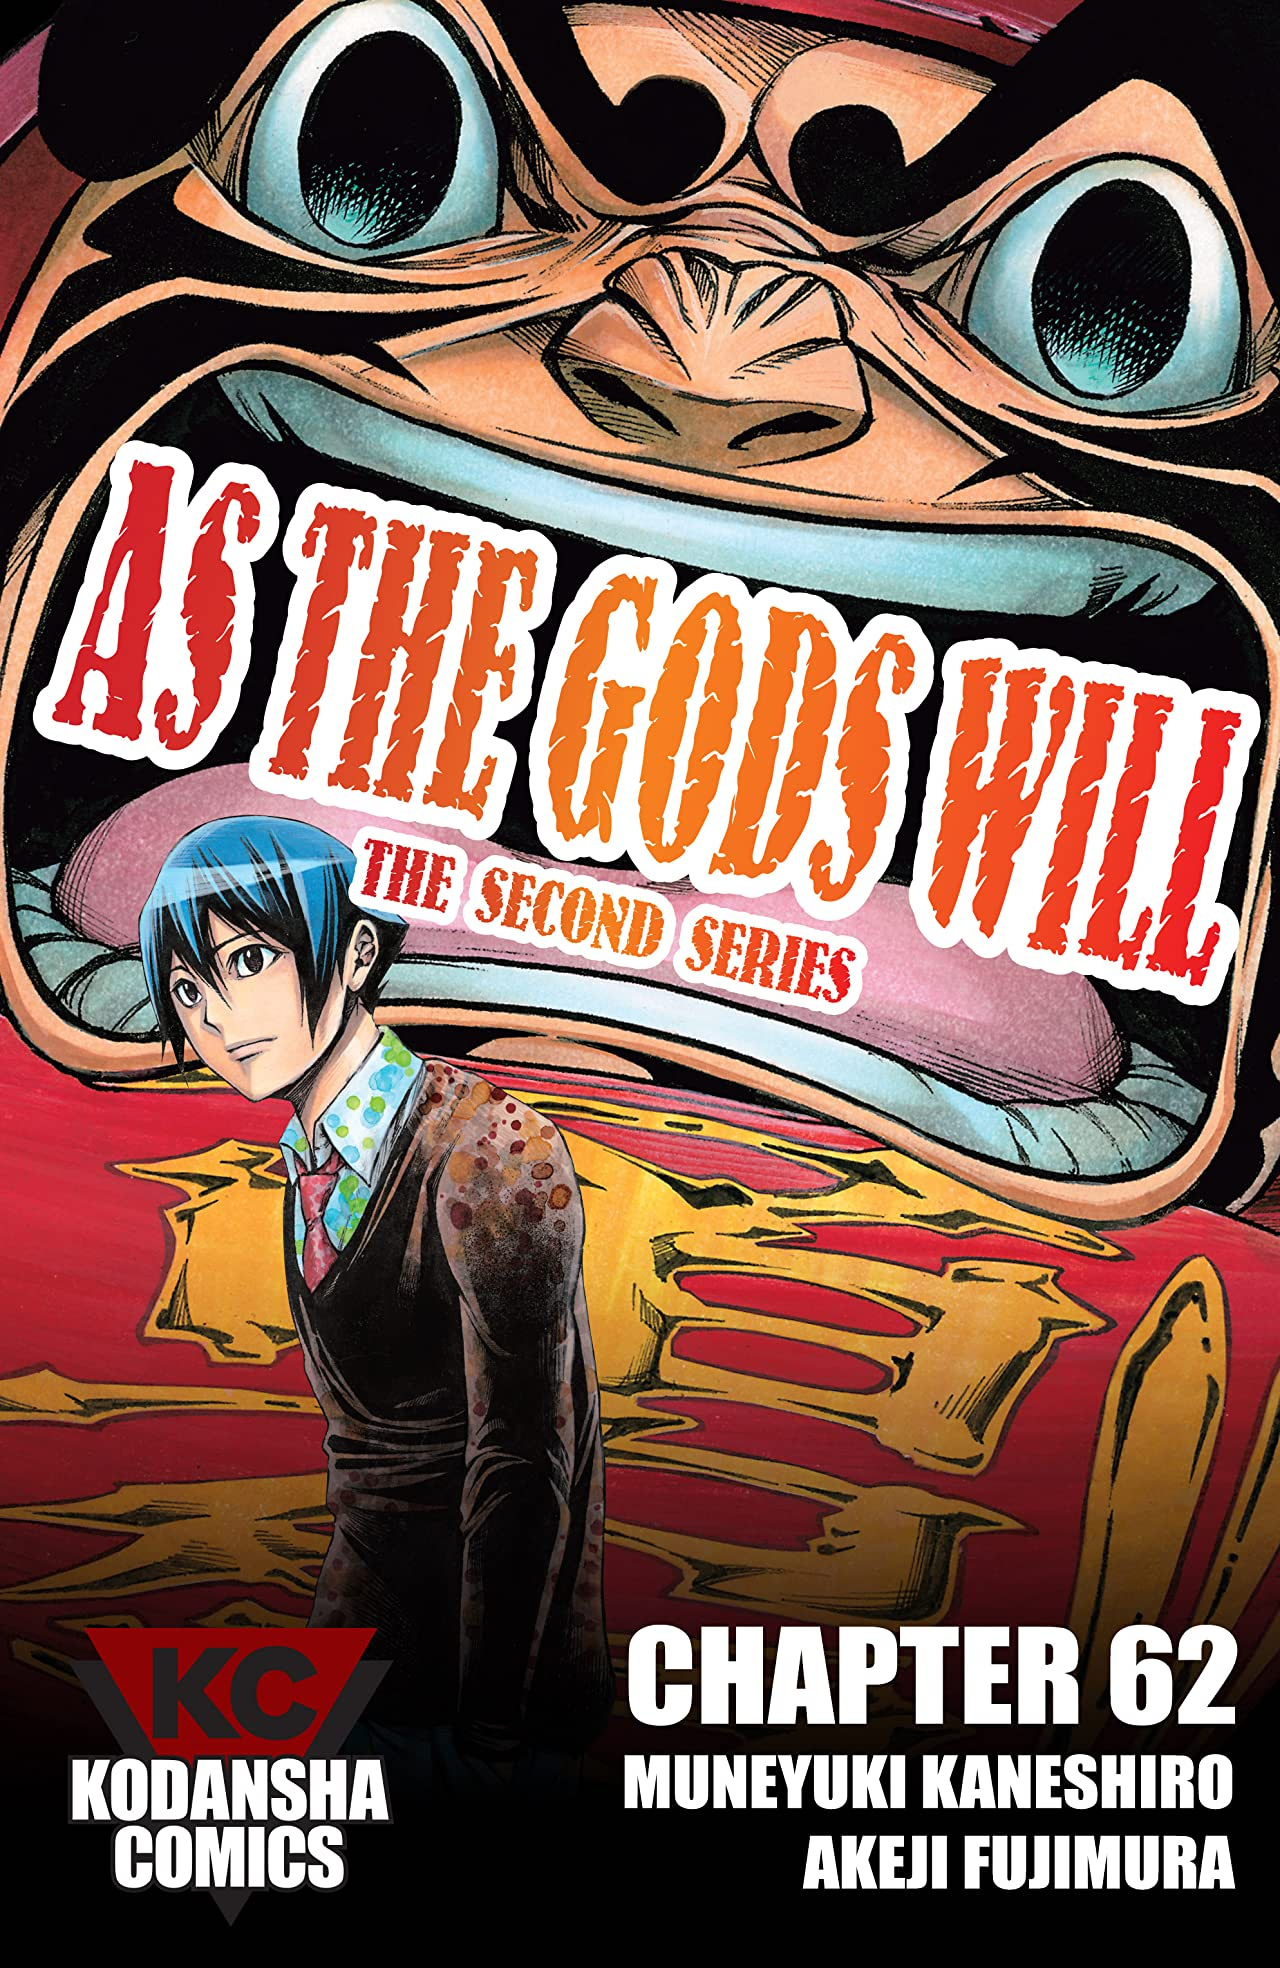 As The Gods Will: The Second Series #62